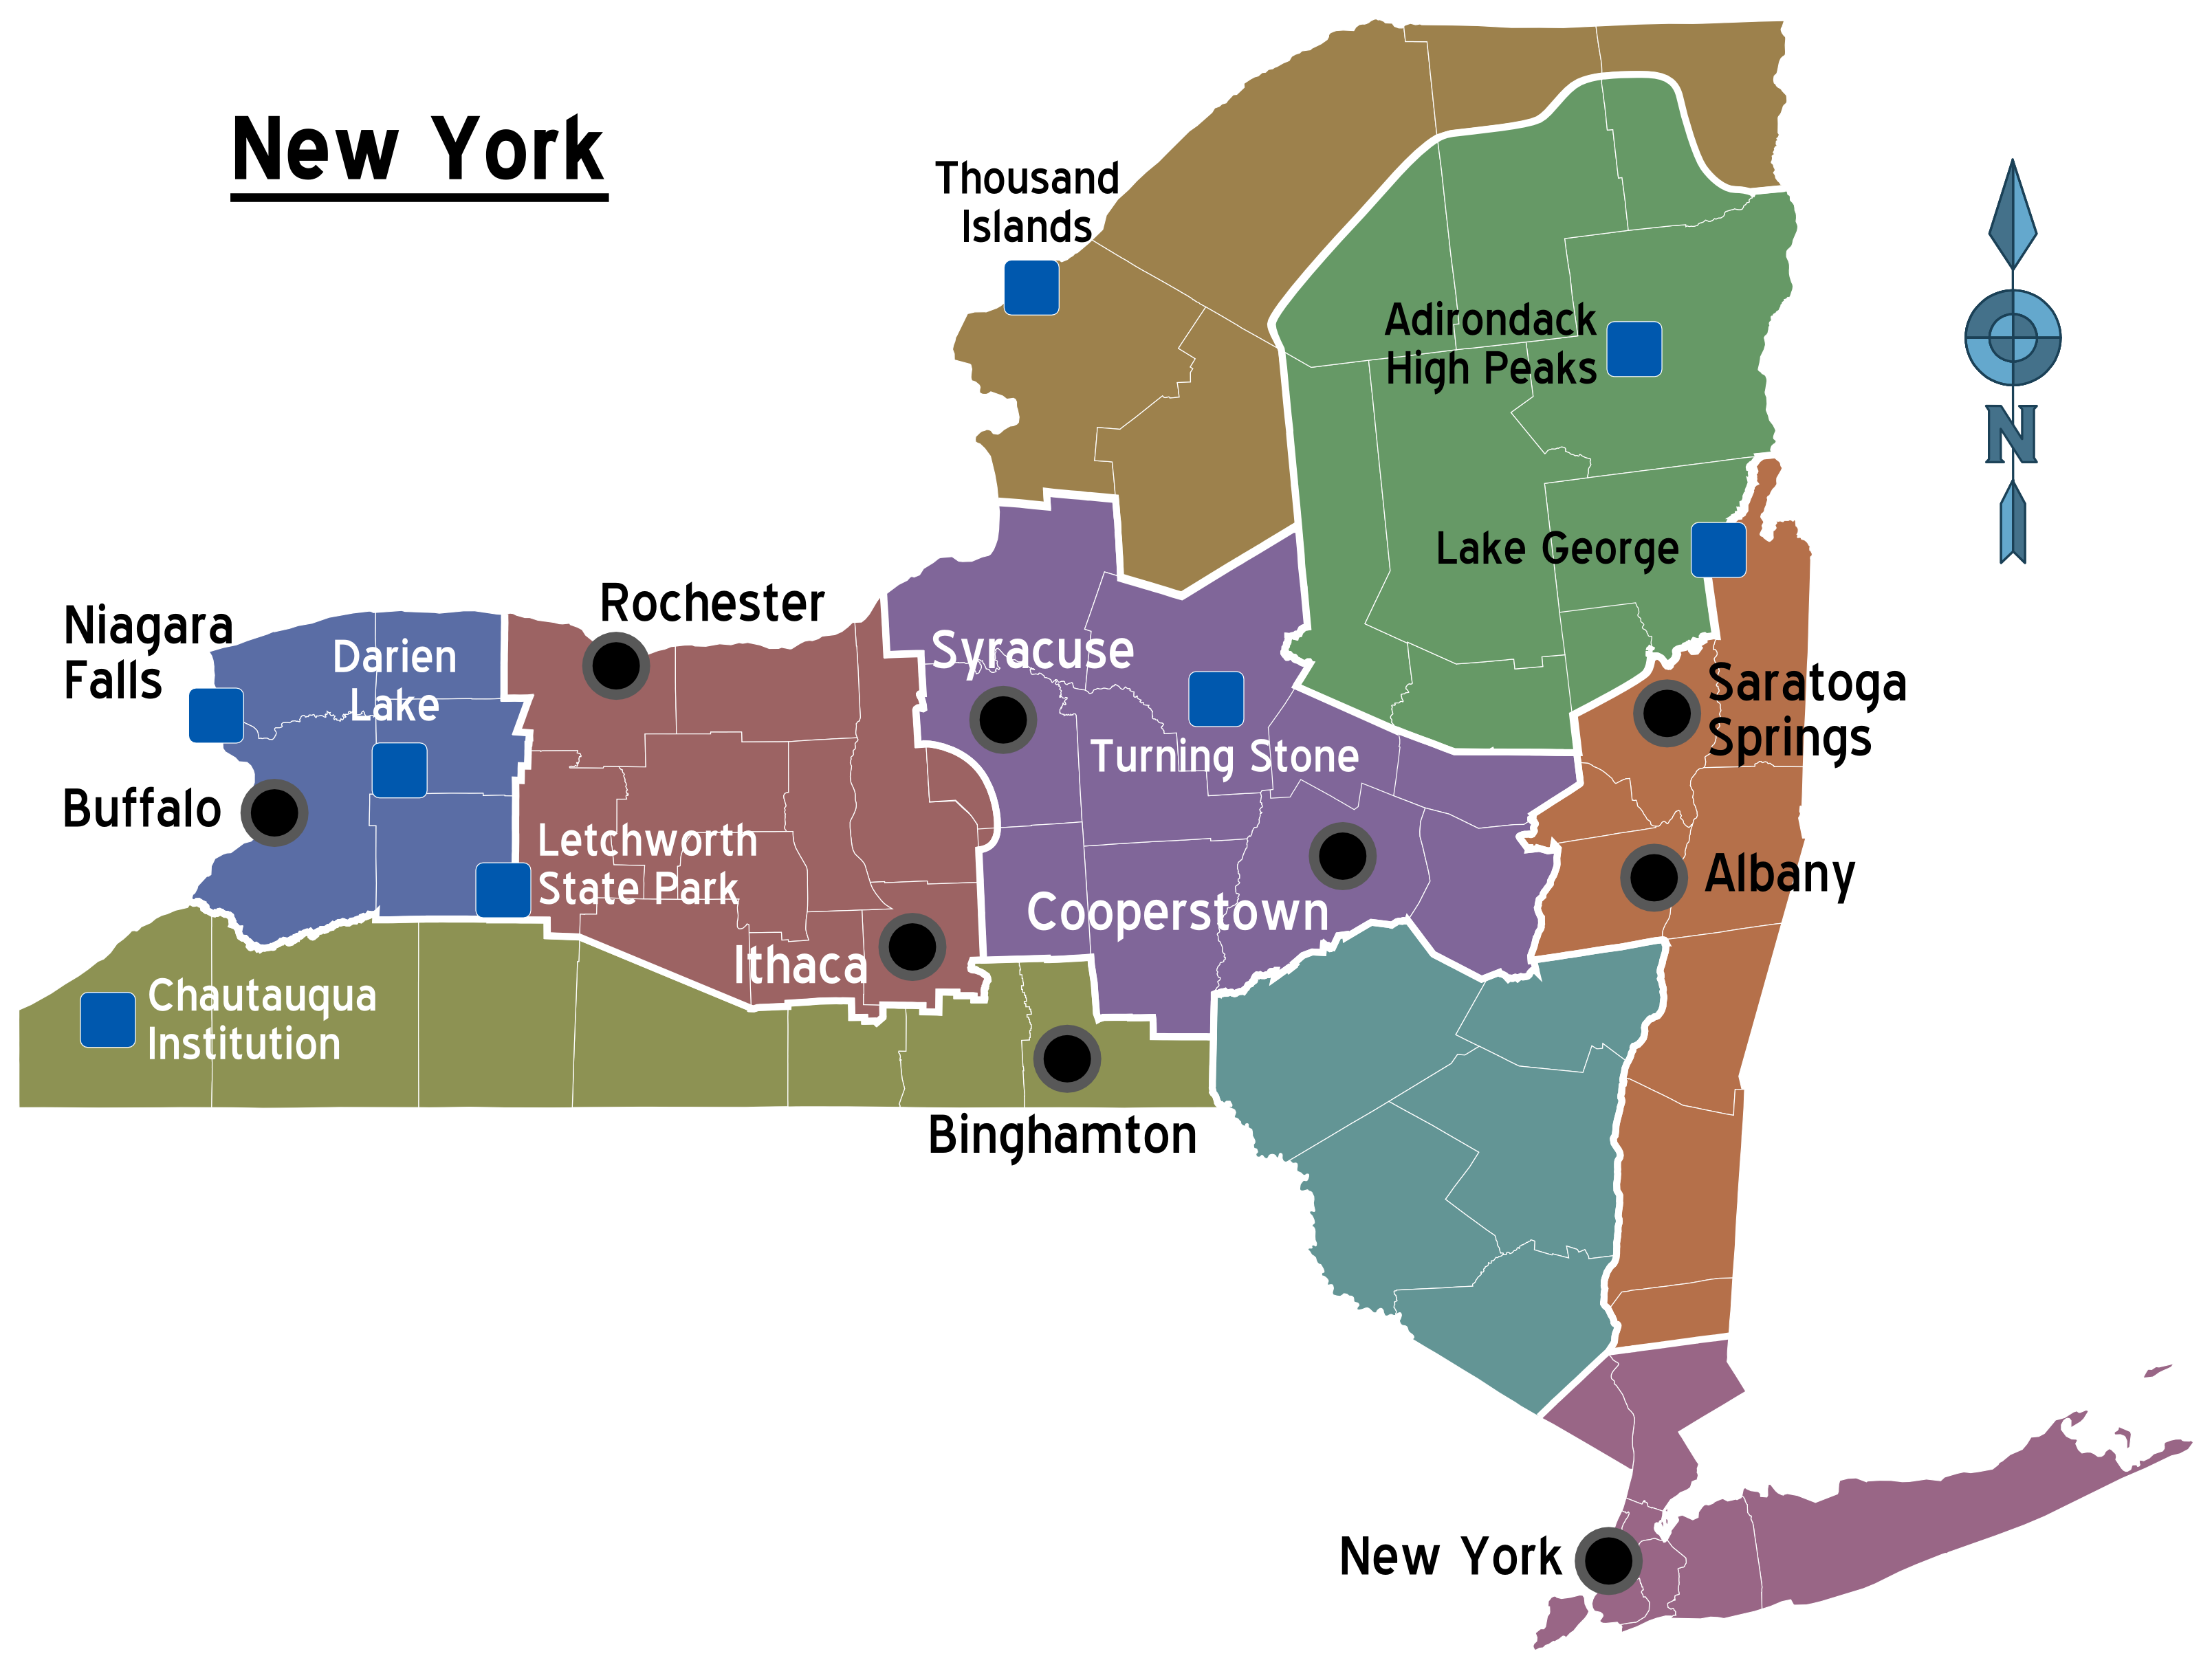 Islands Ny Is Located In What Region Of Nys